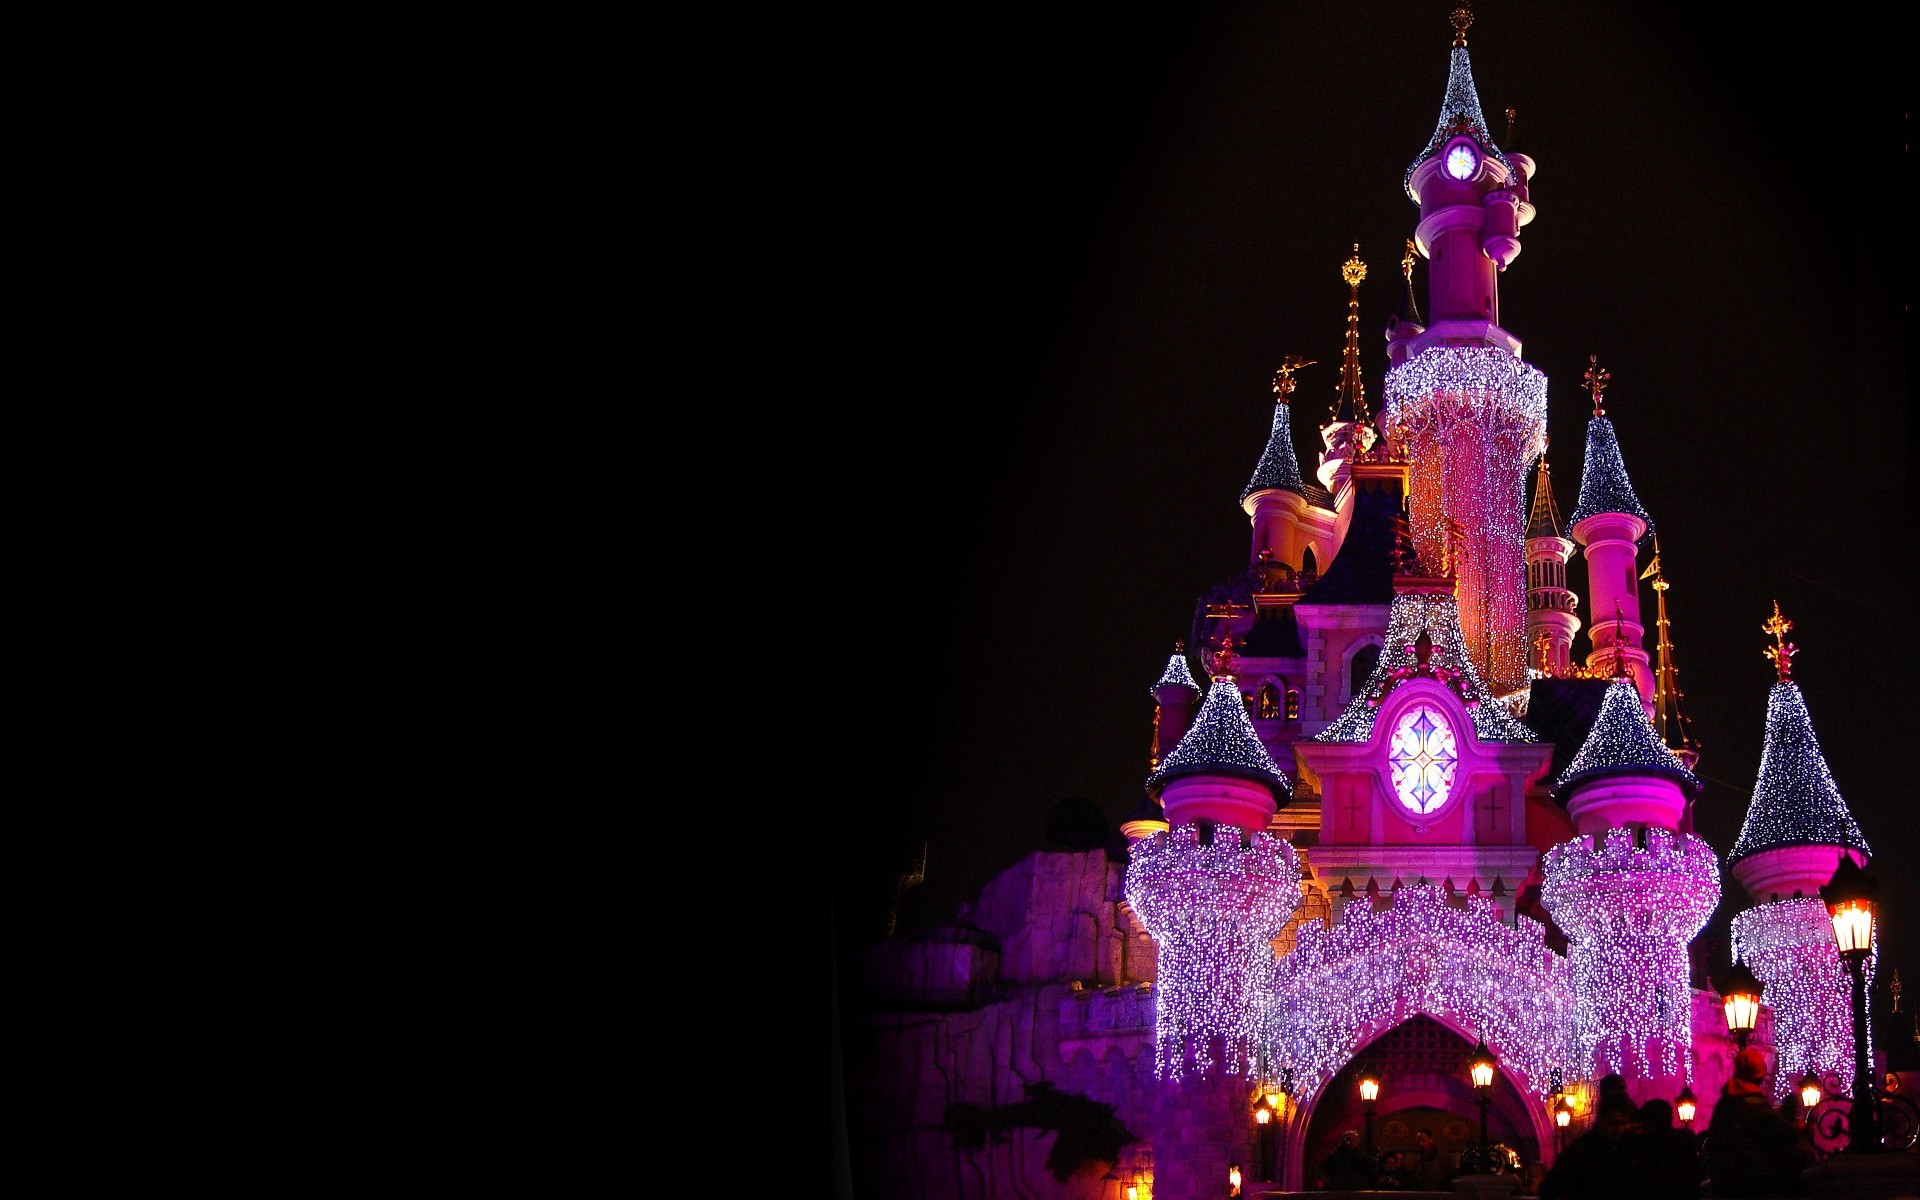 1920x1200 32 Disneyland HD Wallpapers | Backgrounds - Wallpaper Abyss